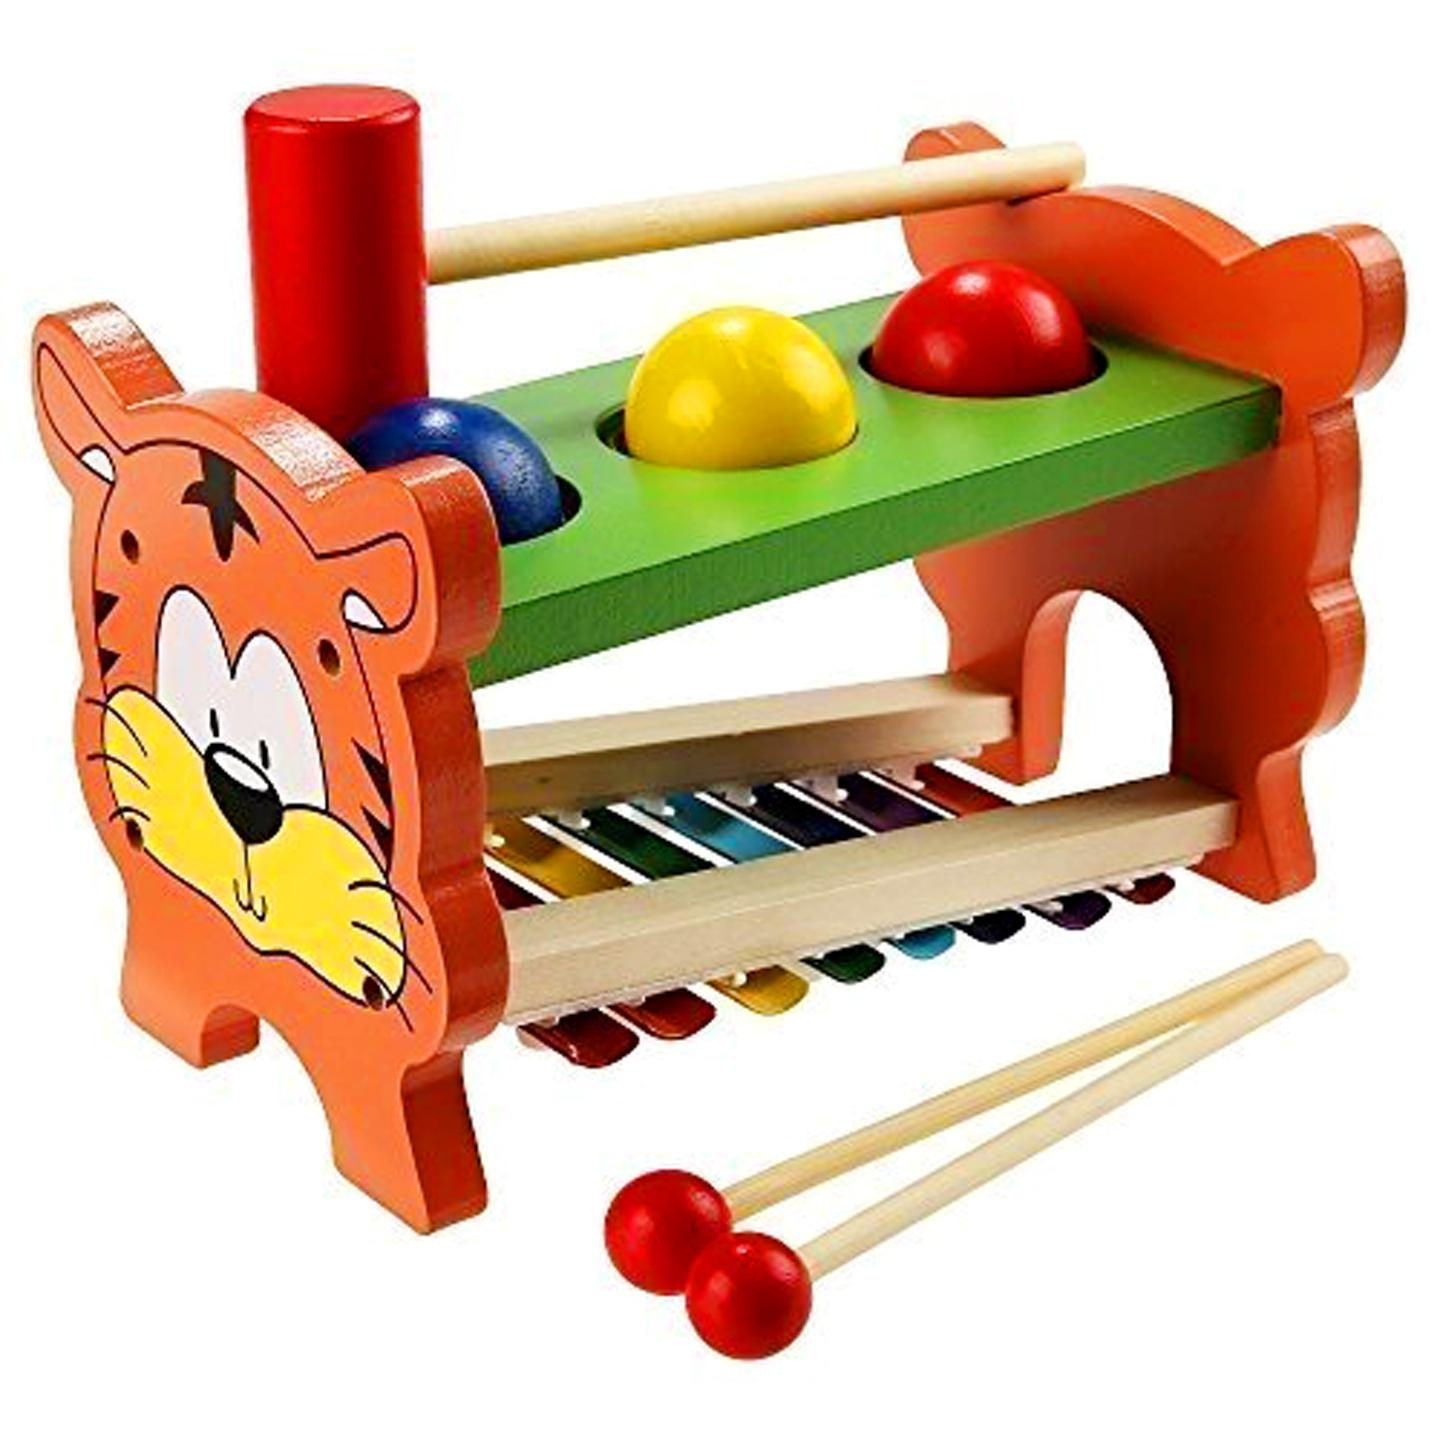 2-In-1 Wooden Pounding Bench Hammer Ball And Musical Xylophone Educational Development Music Toy For Kids By Christine Gutierrez-Eliseo.